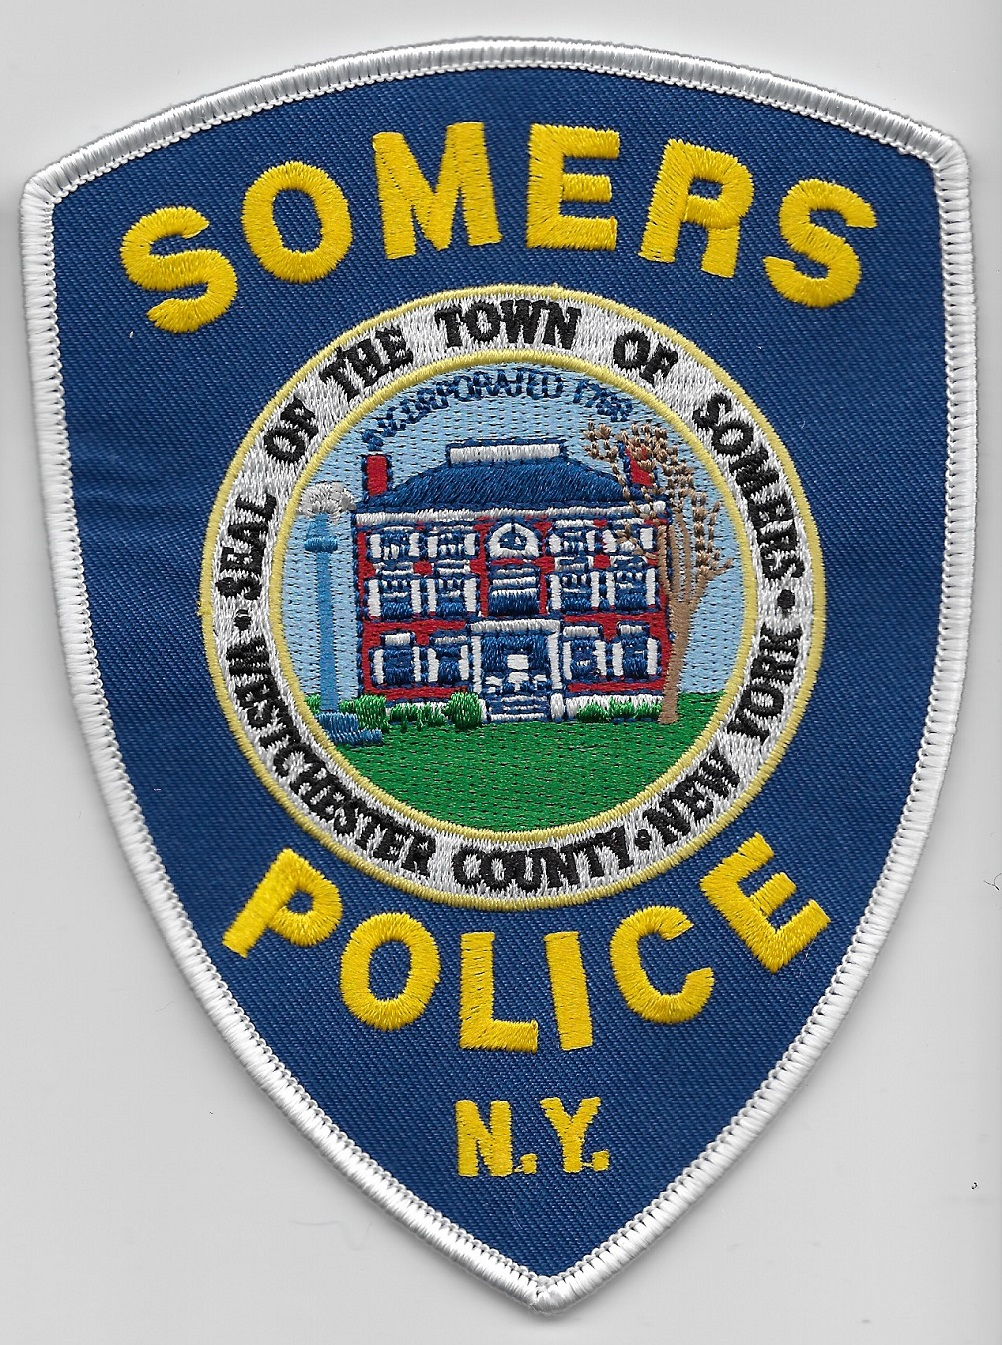 Sommers Police NY